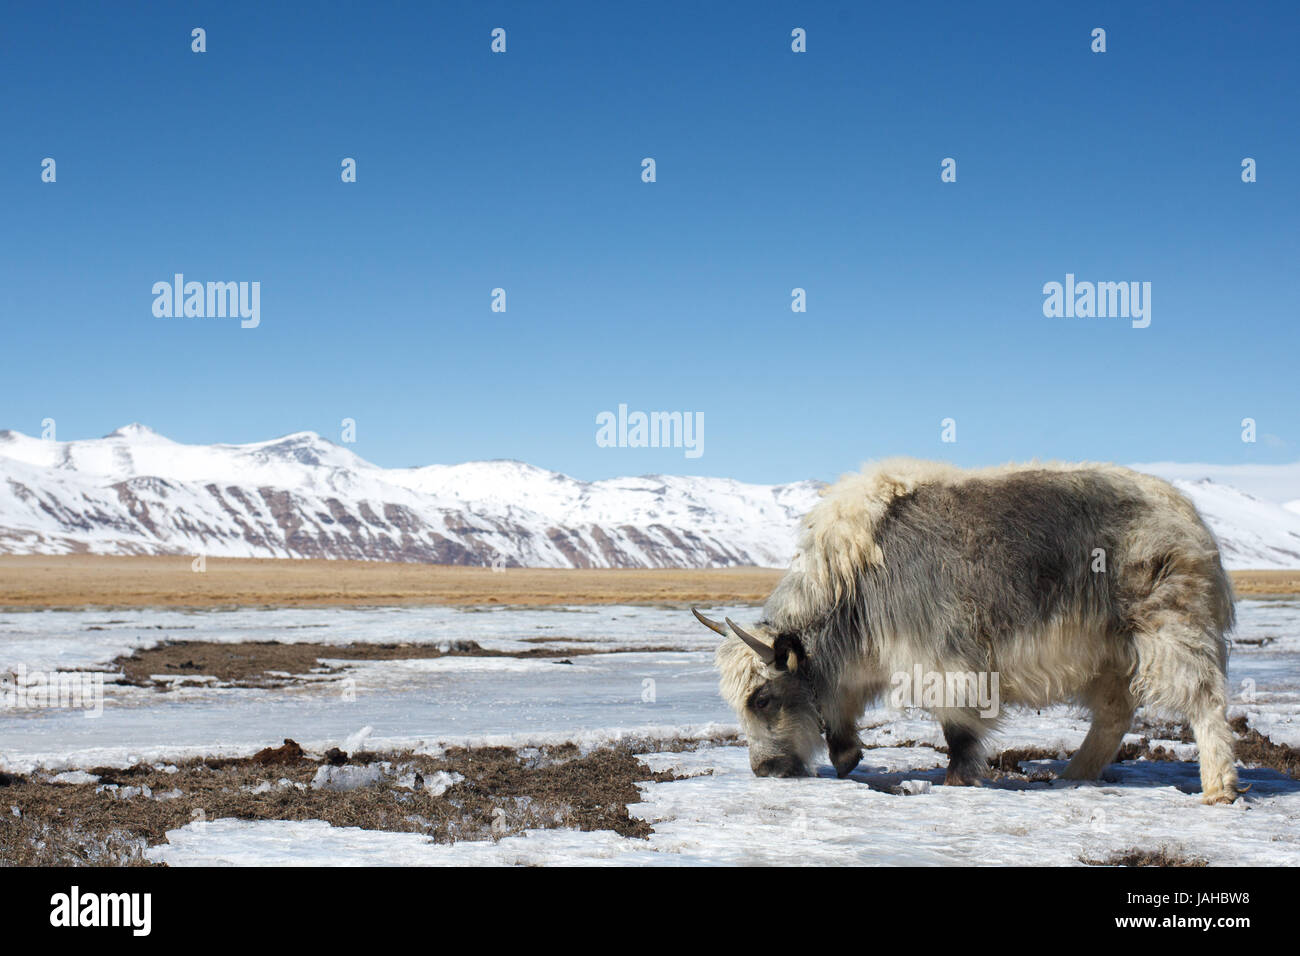 Yaks grazing on roots found amid the frozen surface of the Startsapuk Tso  lake in Ladakh - Stock Image